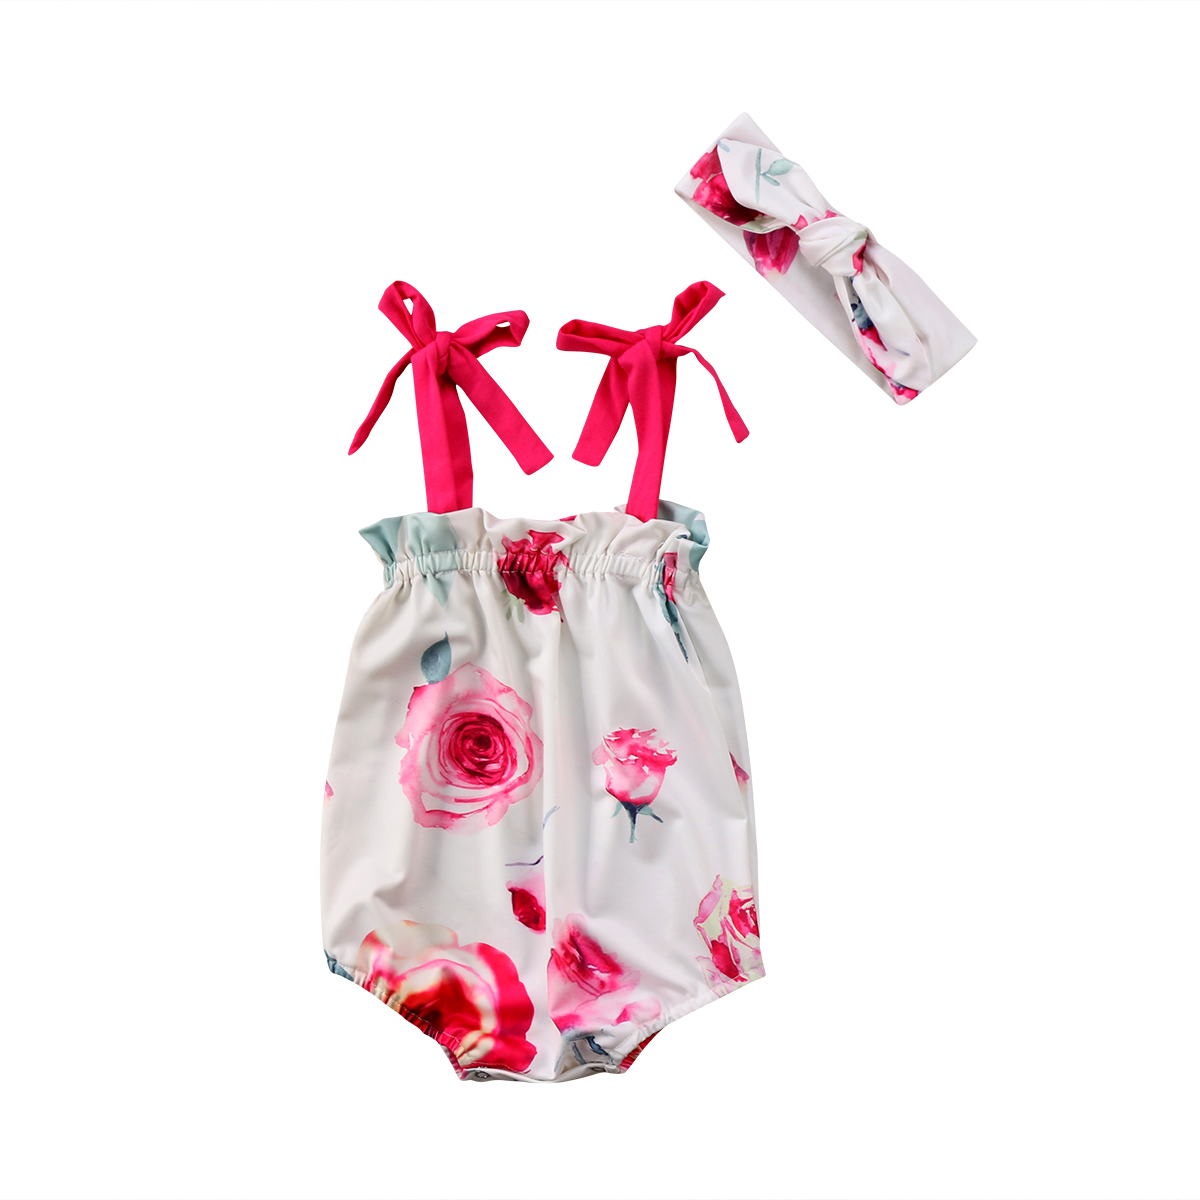 2Pcs Toddler Newborn Baby Girl Bandge Kid Floral Romper Jumpsuit Jumper Headband Clothes Outfits